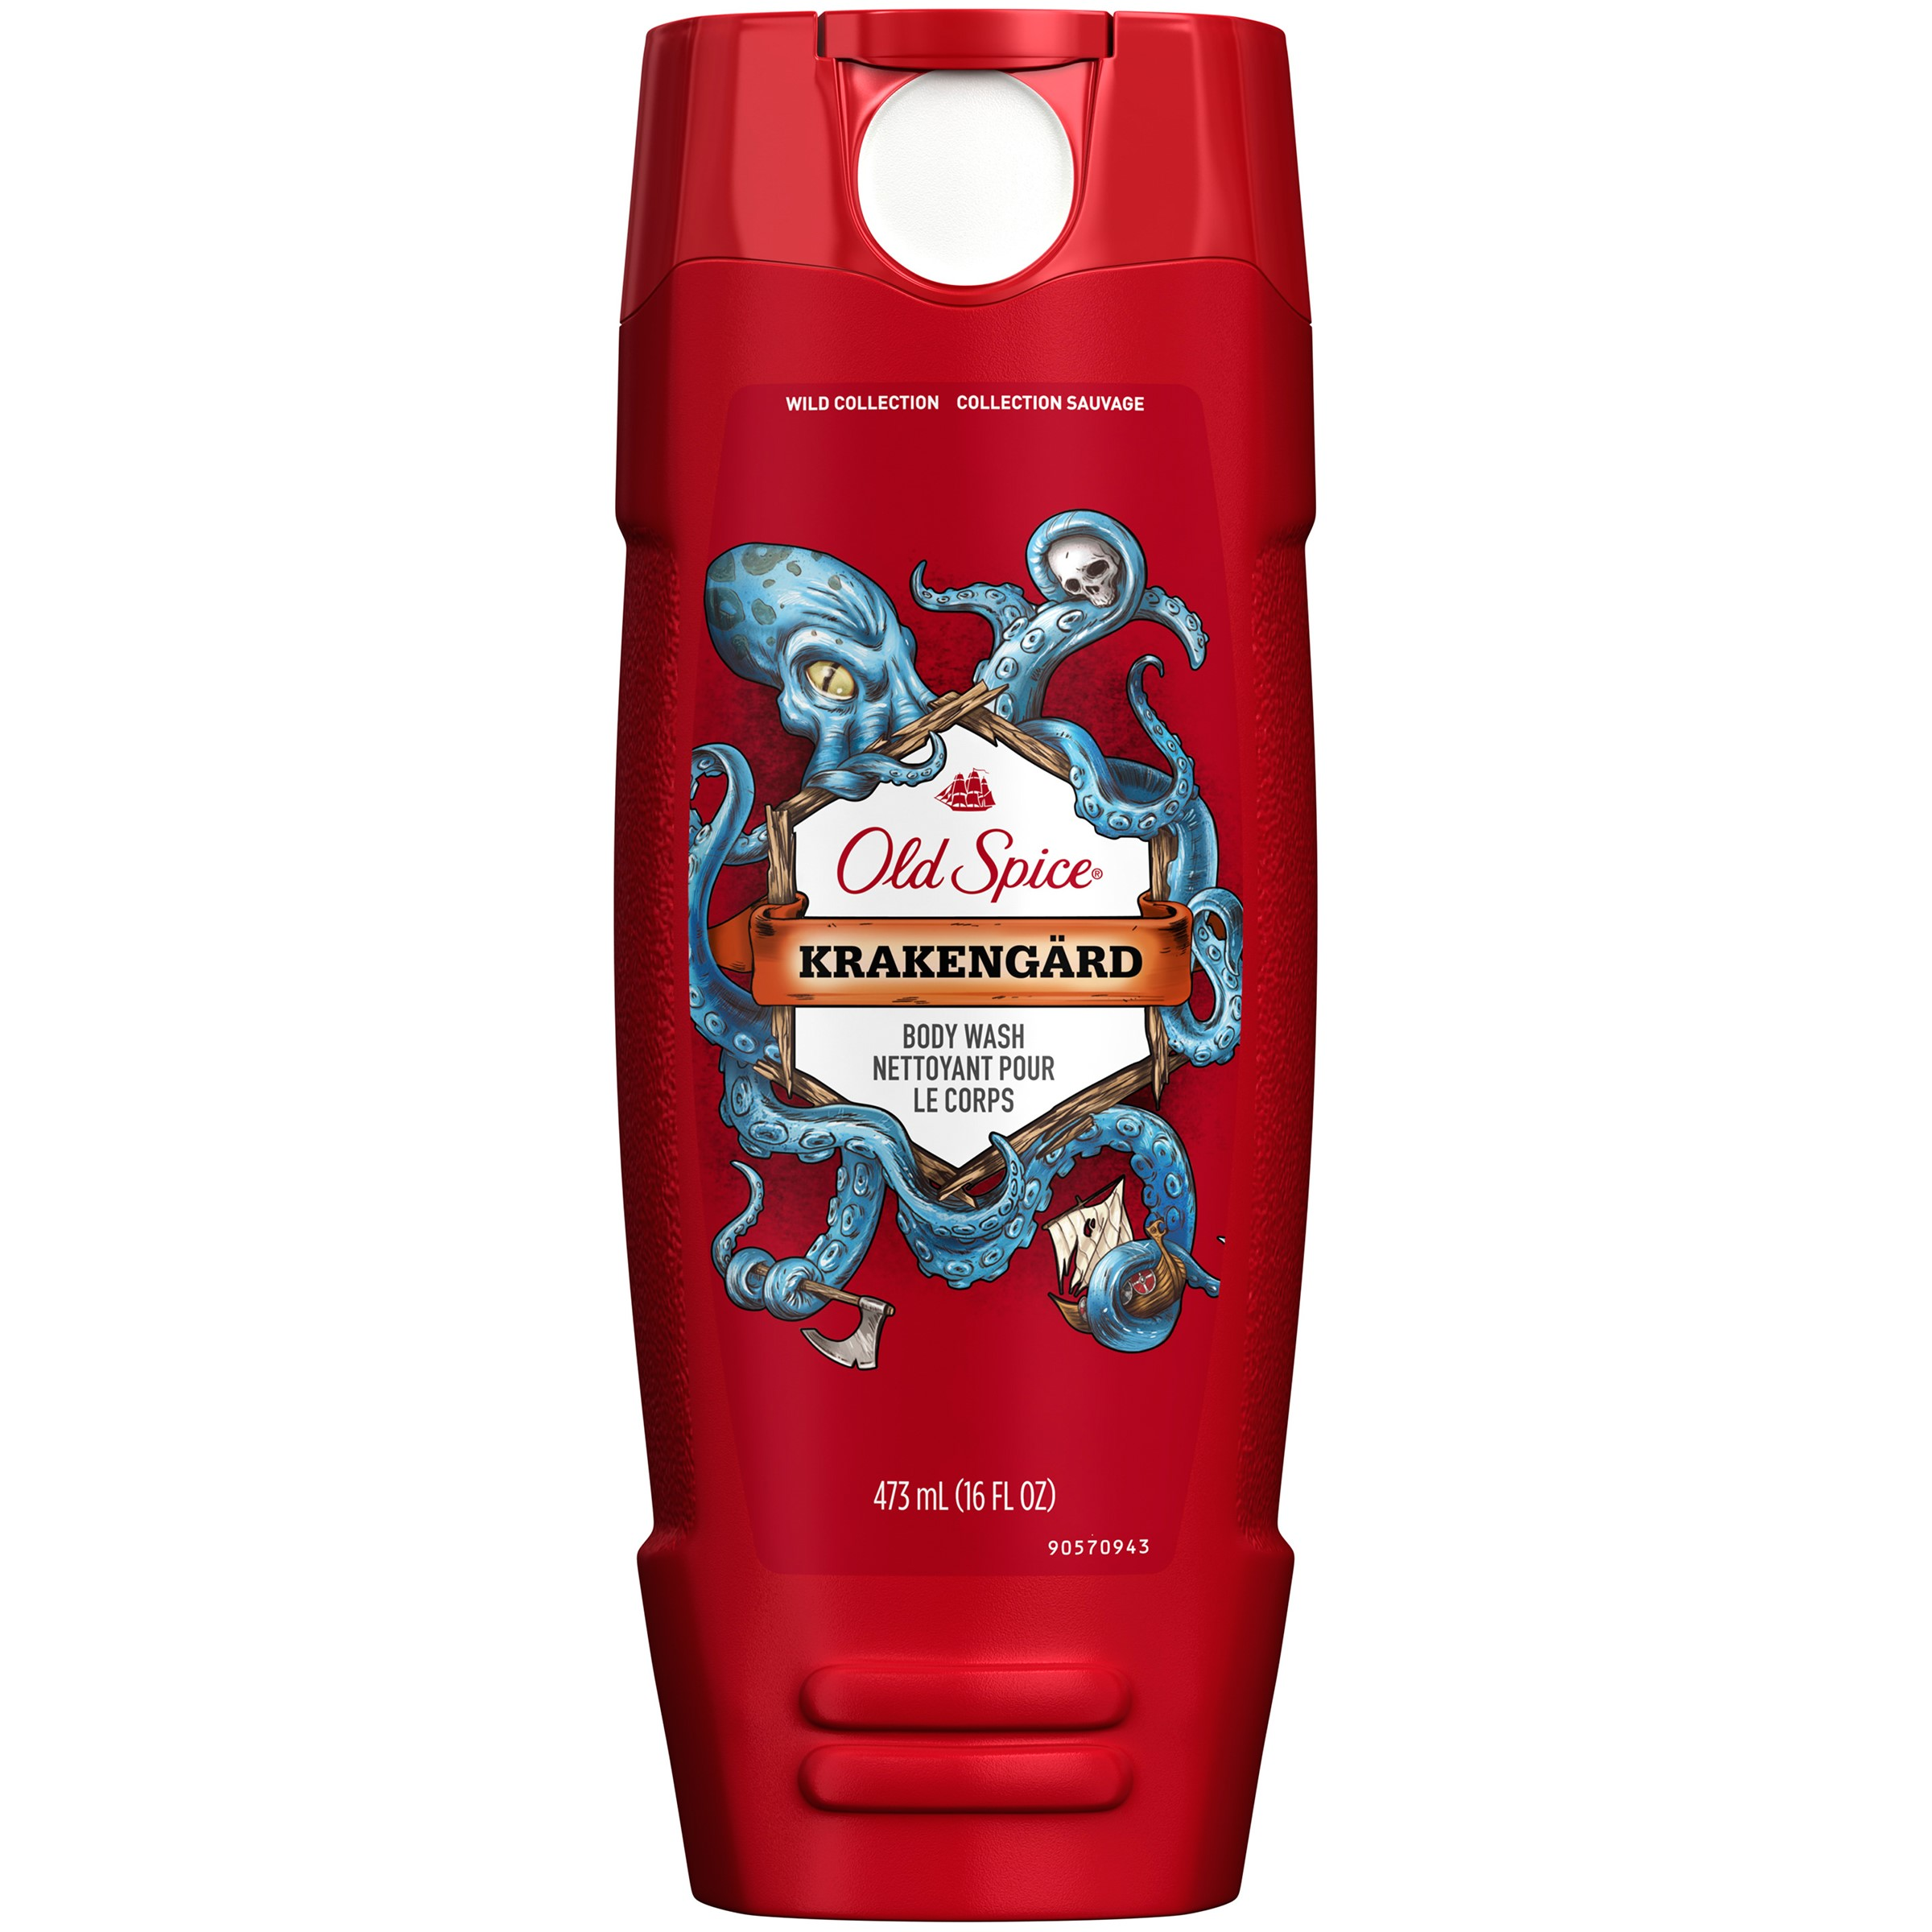 Old Spice Body Wash Wild Collection Krakengard 16 oz (473ml)